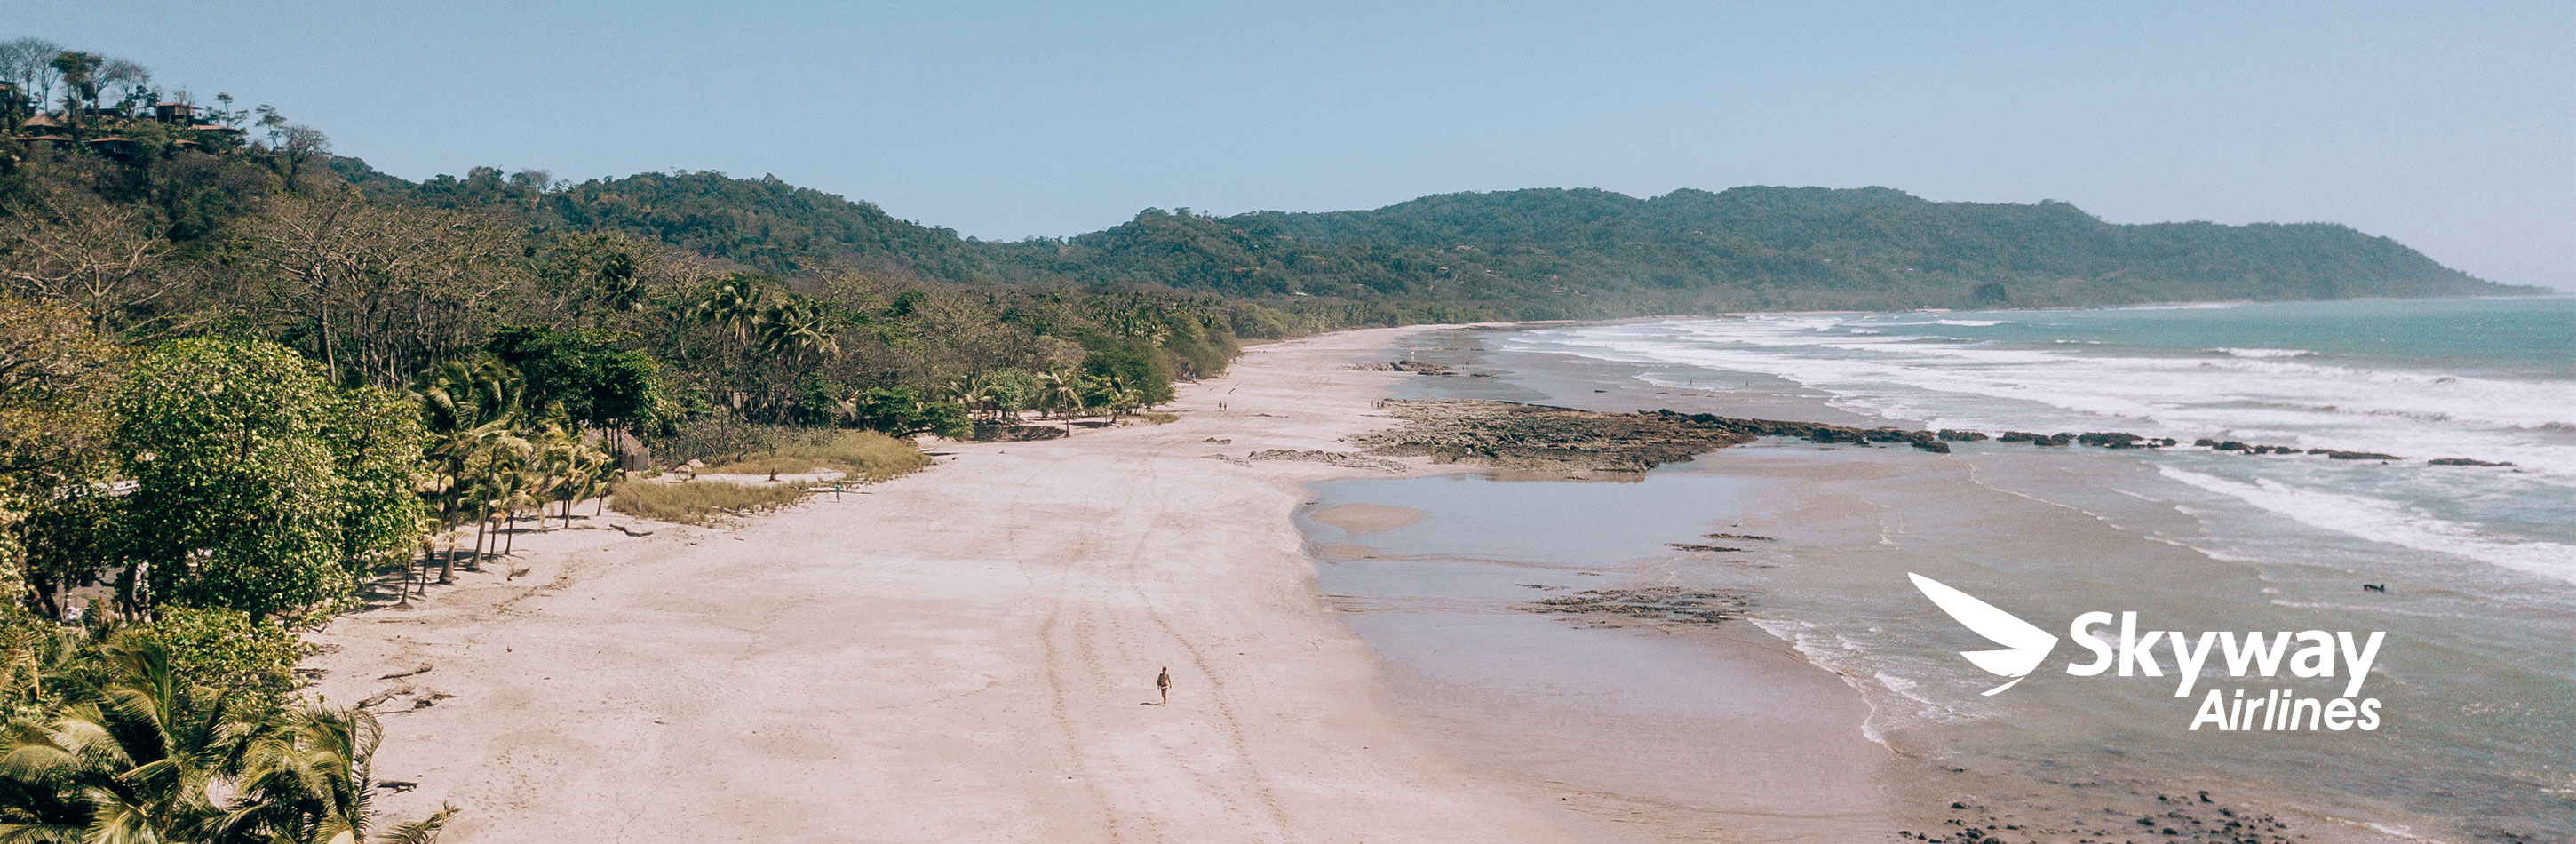 Best things to do in Santa Teresa, Costa Rica. Live the Skyway Experience